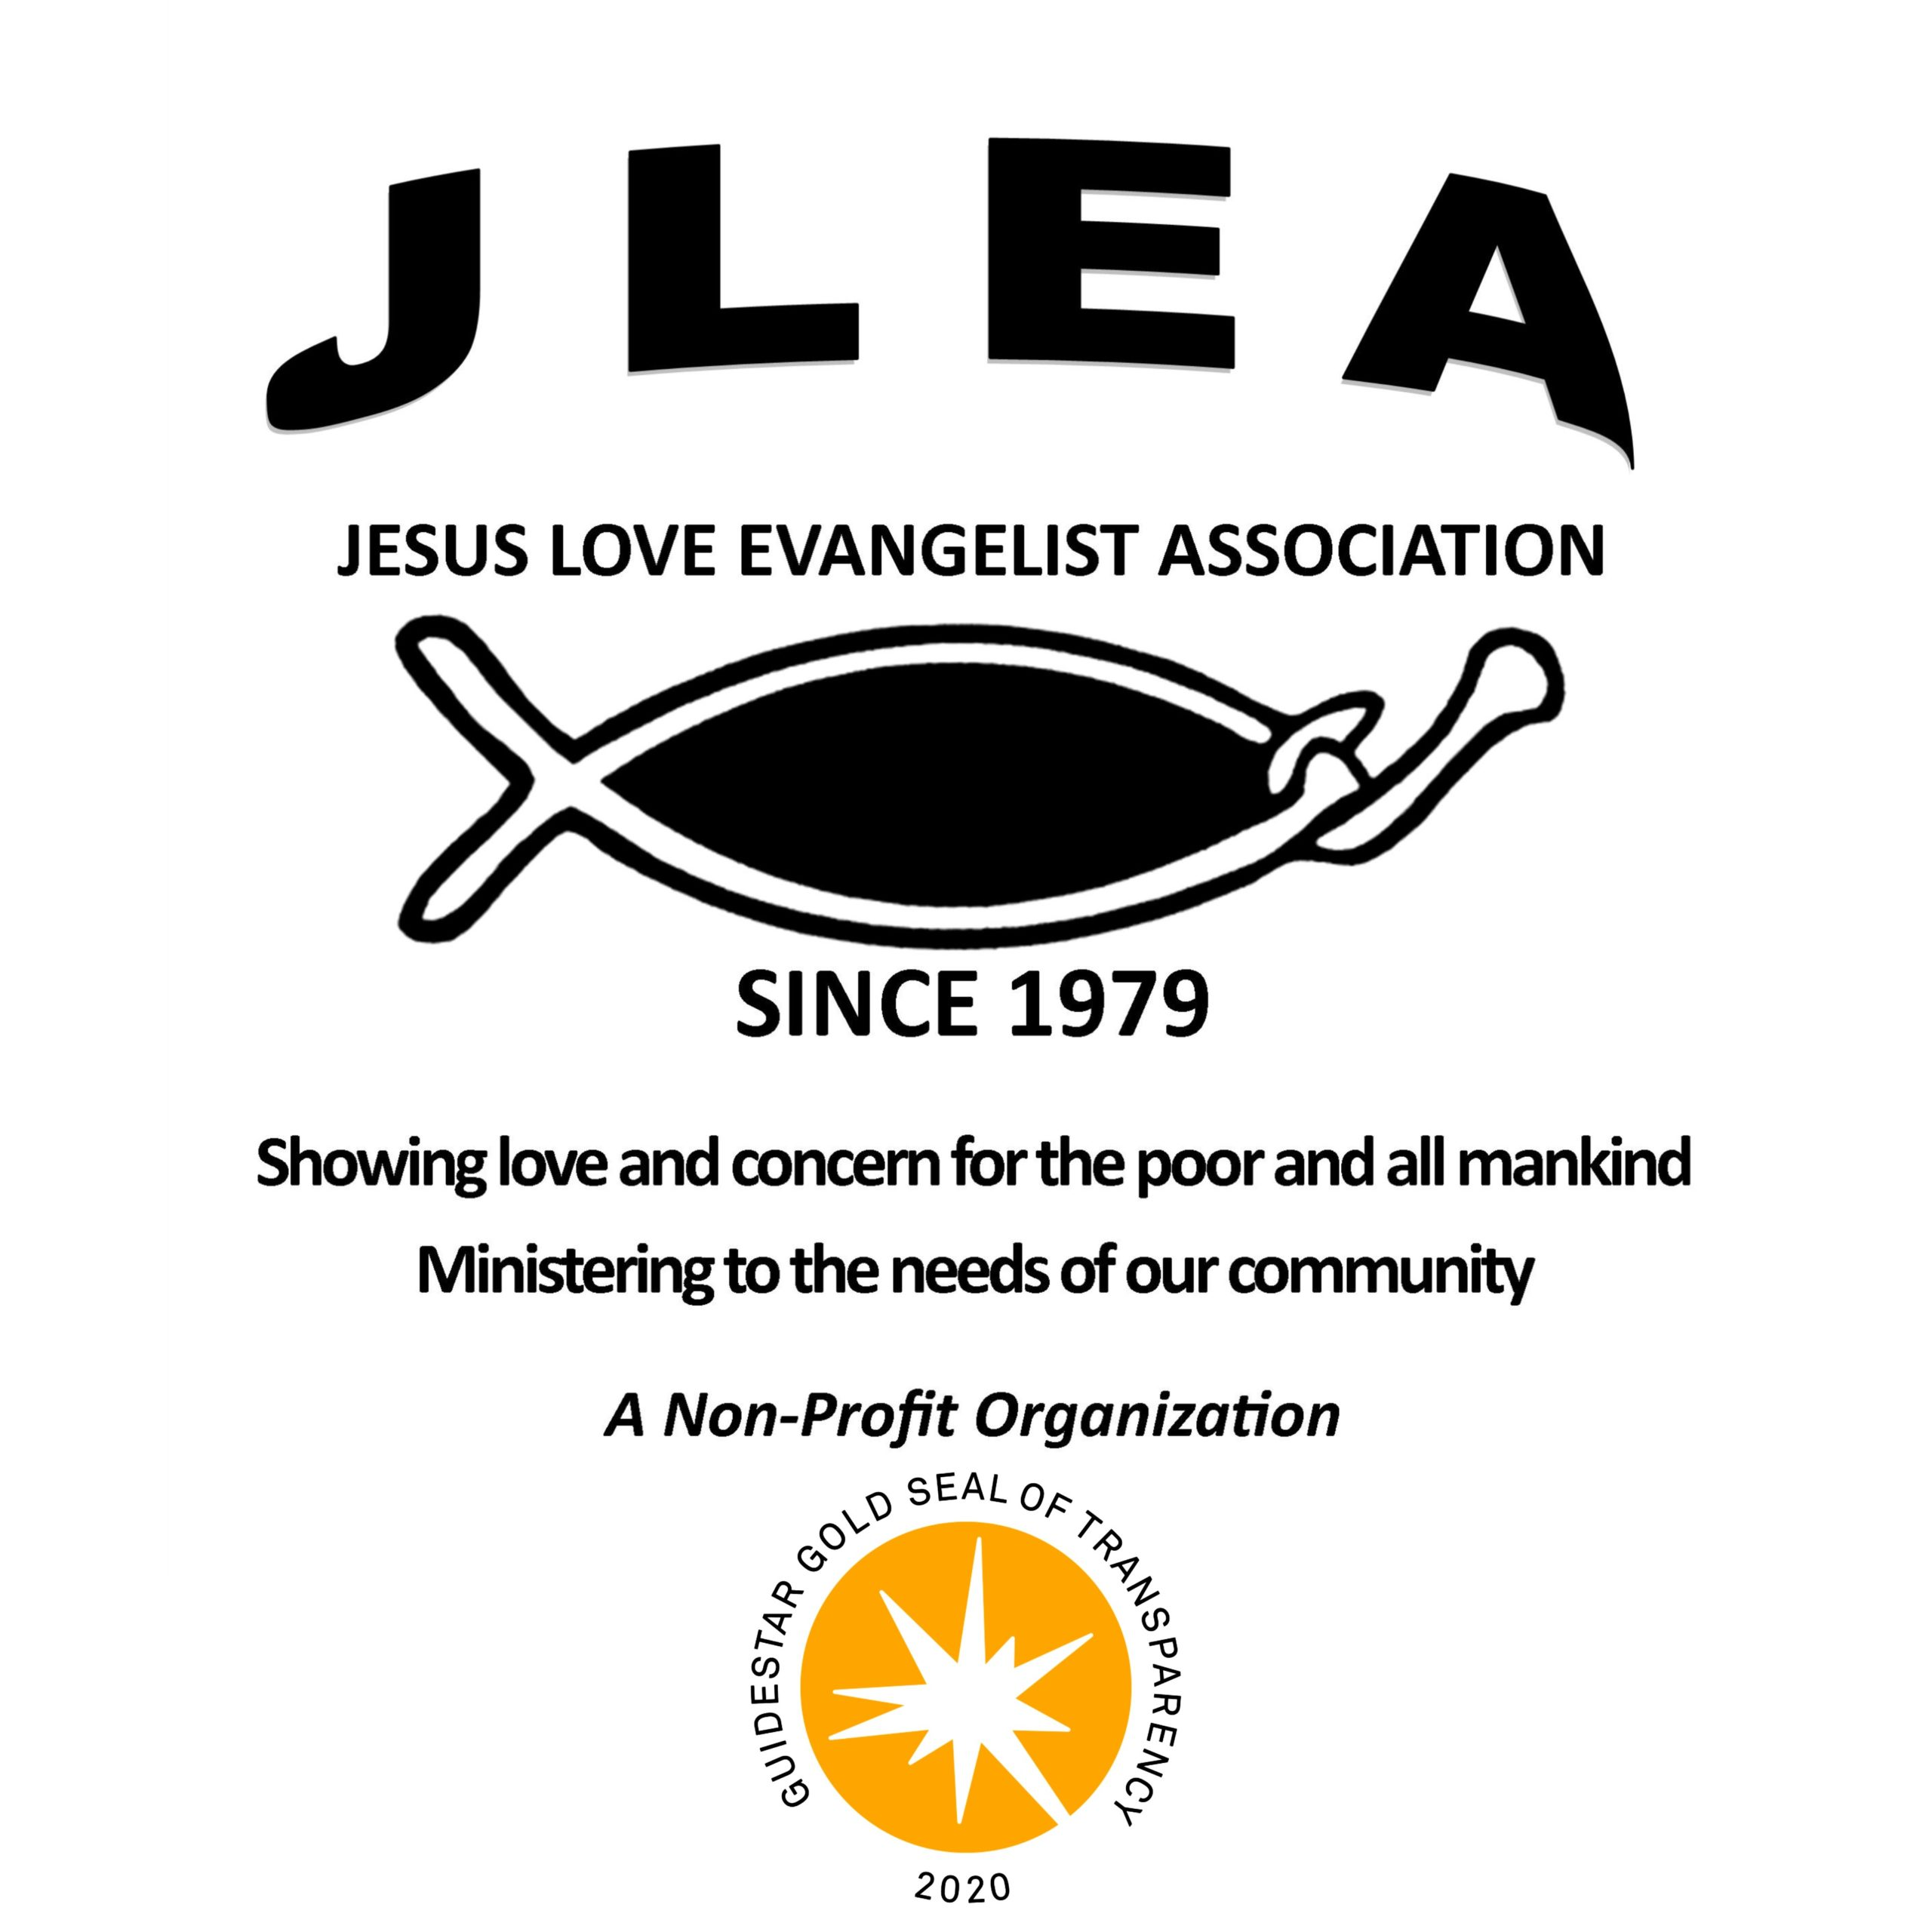 Jesus Love Evangelist Association